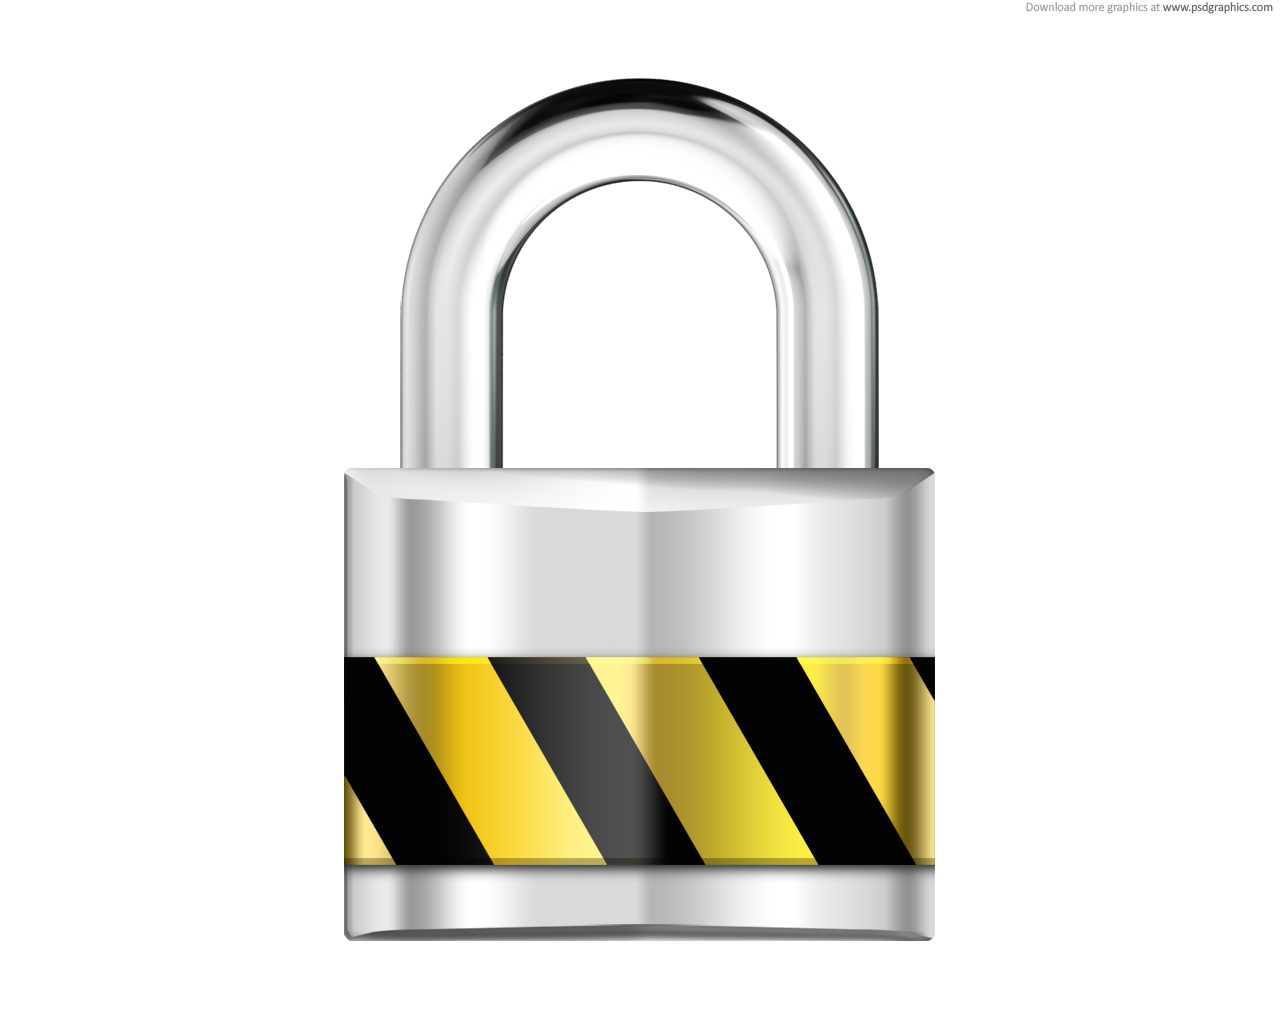 14 Internet Security Lock Icon Images